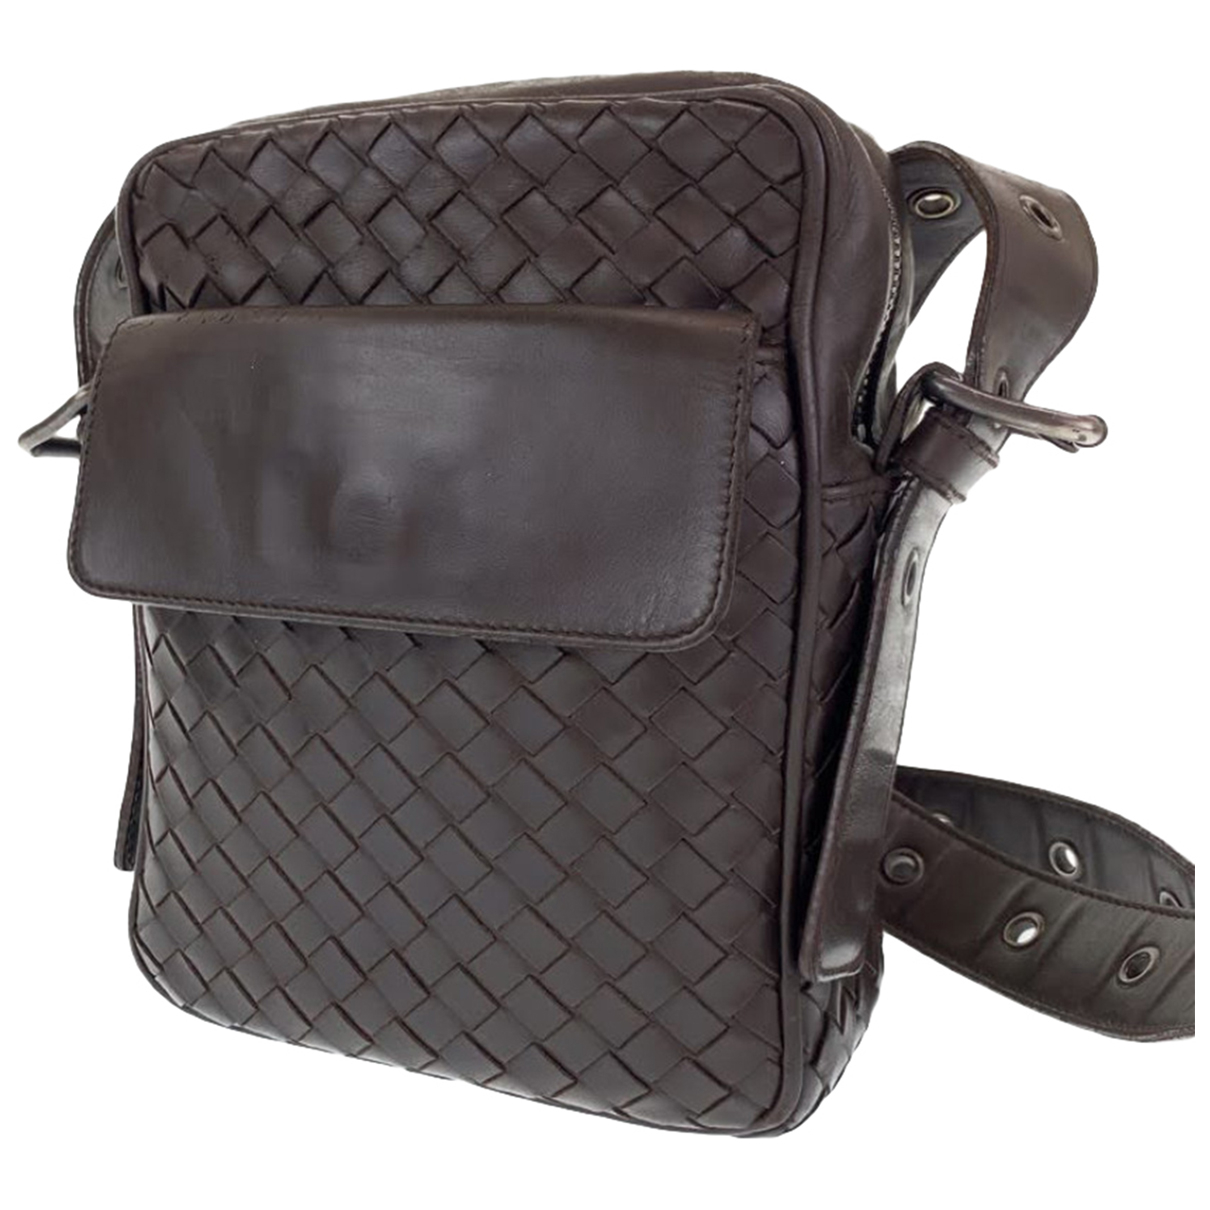 Bottega Veneta N Leather bag for Men N